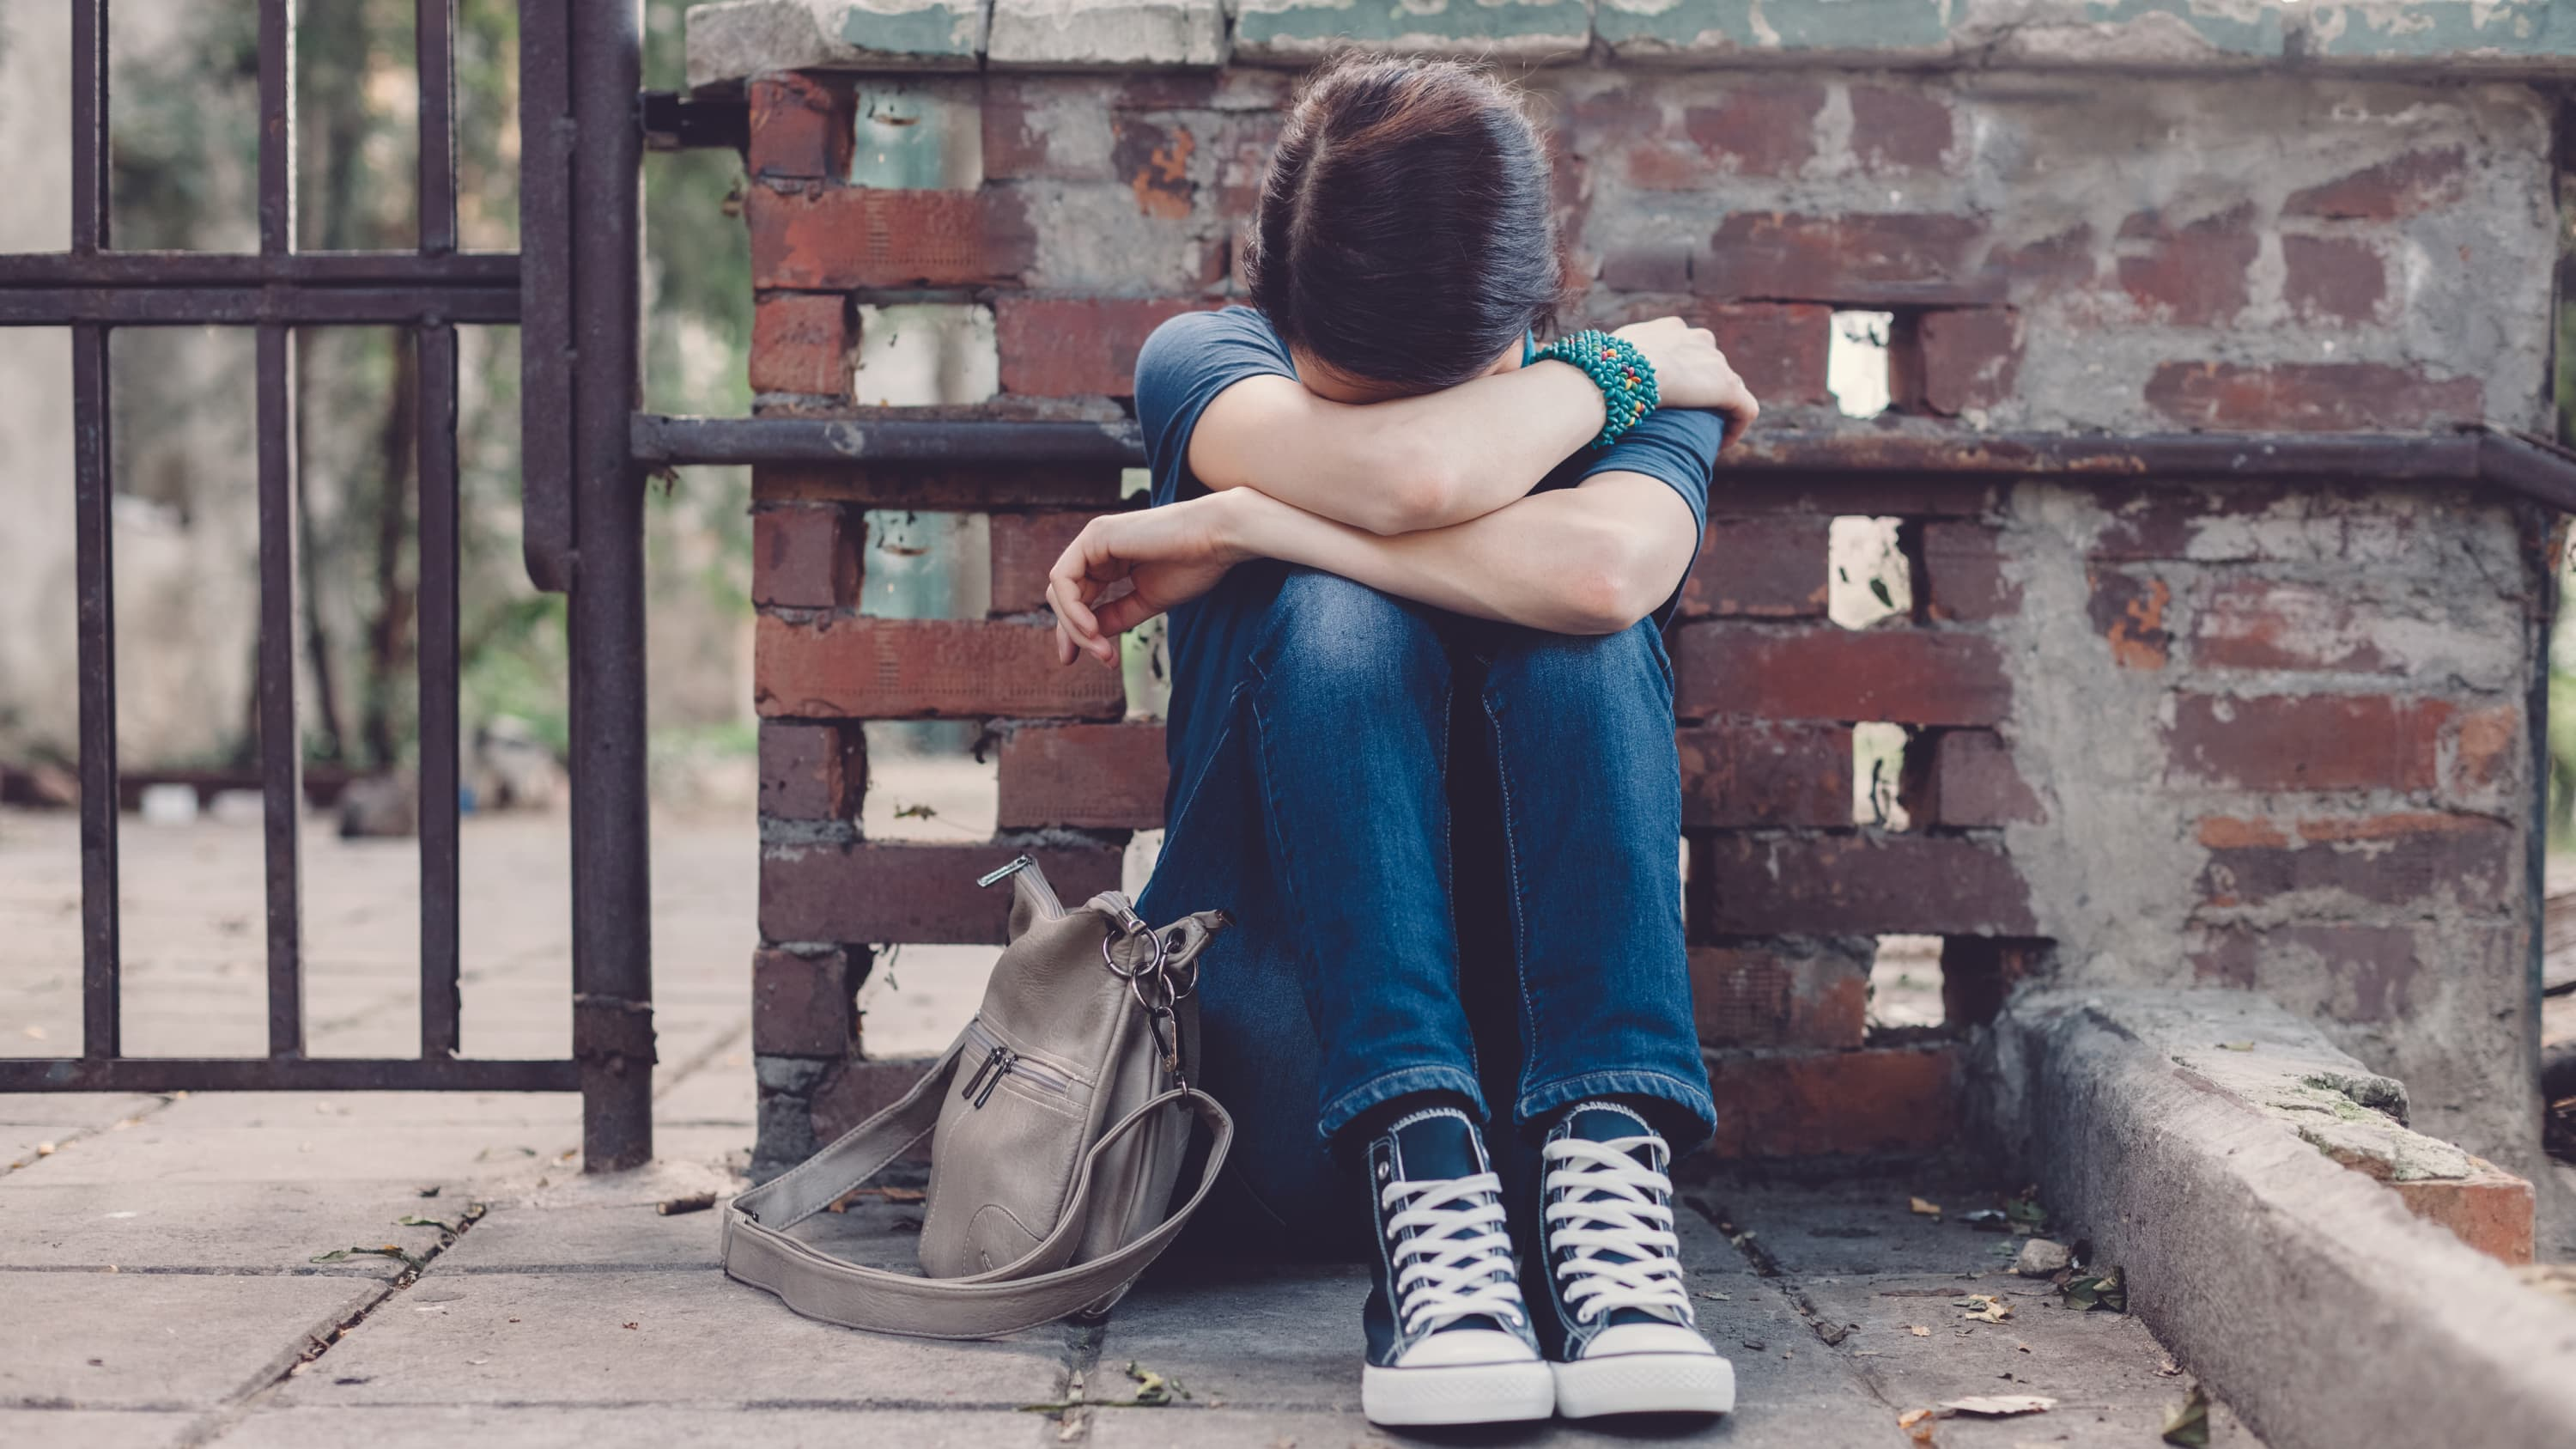 A boy who looks like he is feeling depressed sits on the ground beside his backpack with his head in his hands.